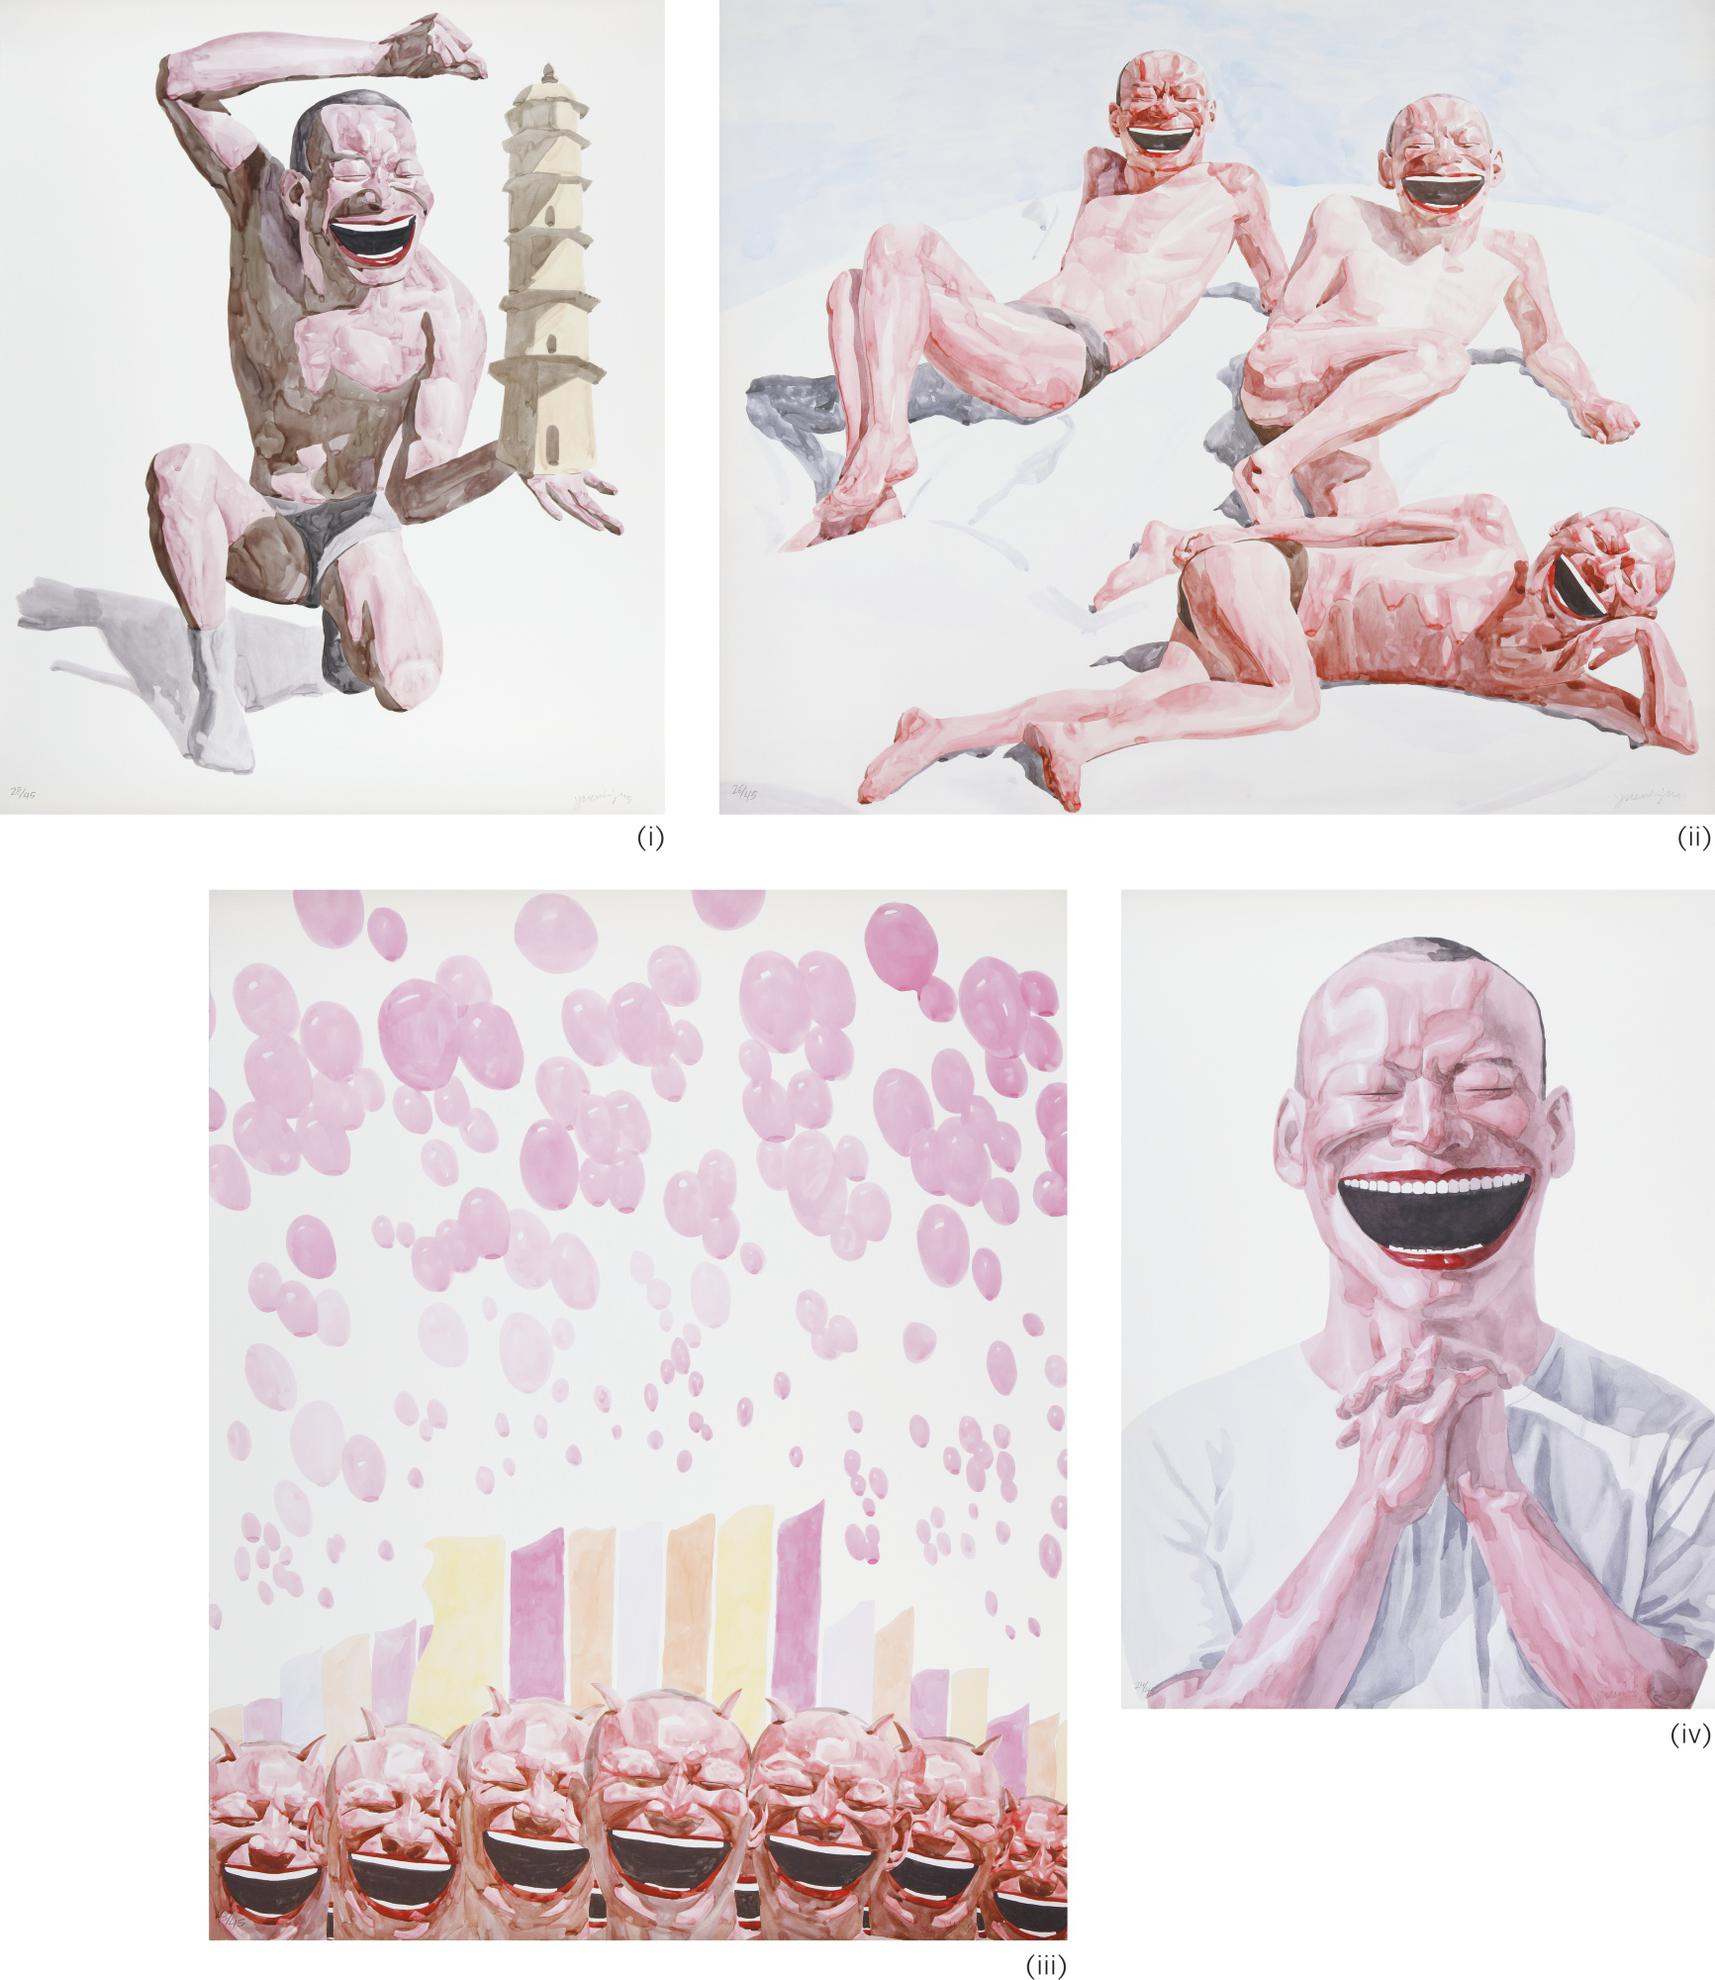 Yue Minjun-Smile-Ism Series No. 17, 25, 18, 23 (Four Works)-2006